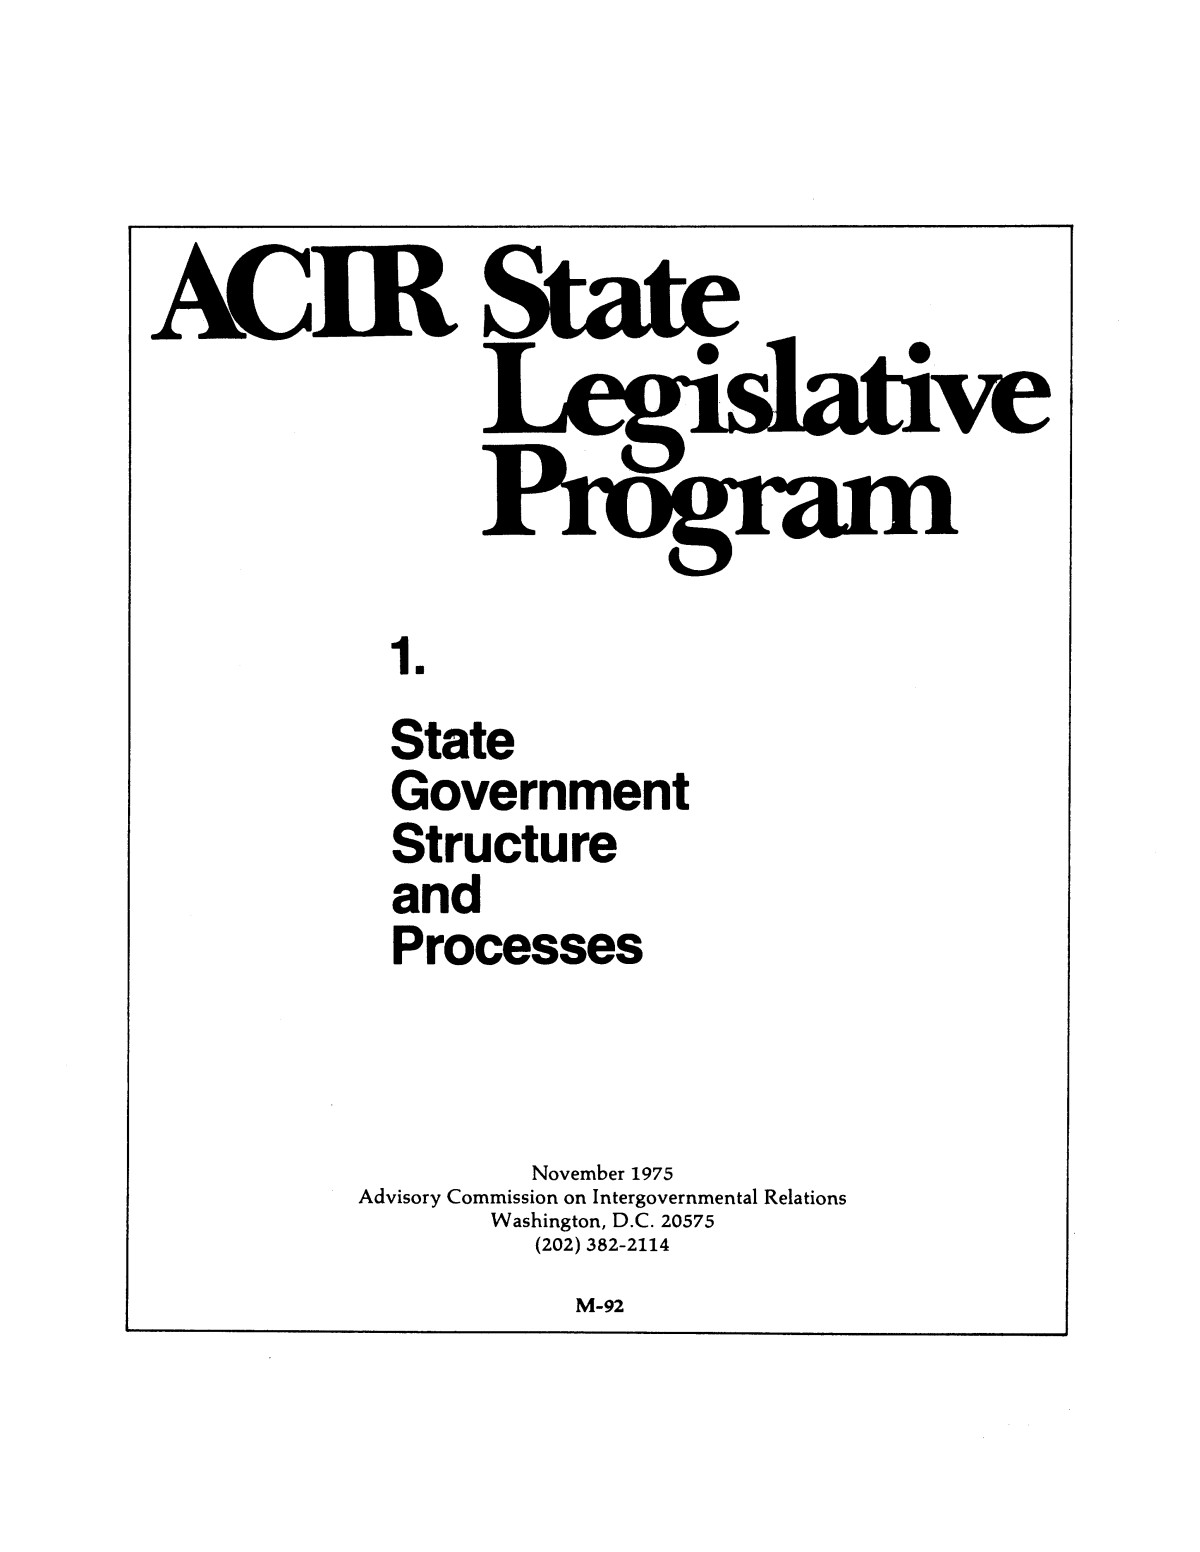 ACIR state legislative program : 1. State government structure and processes                                                                                                      I